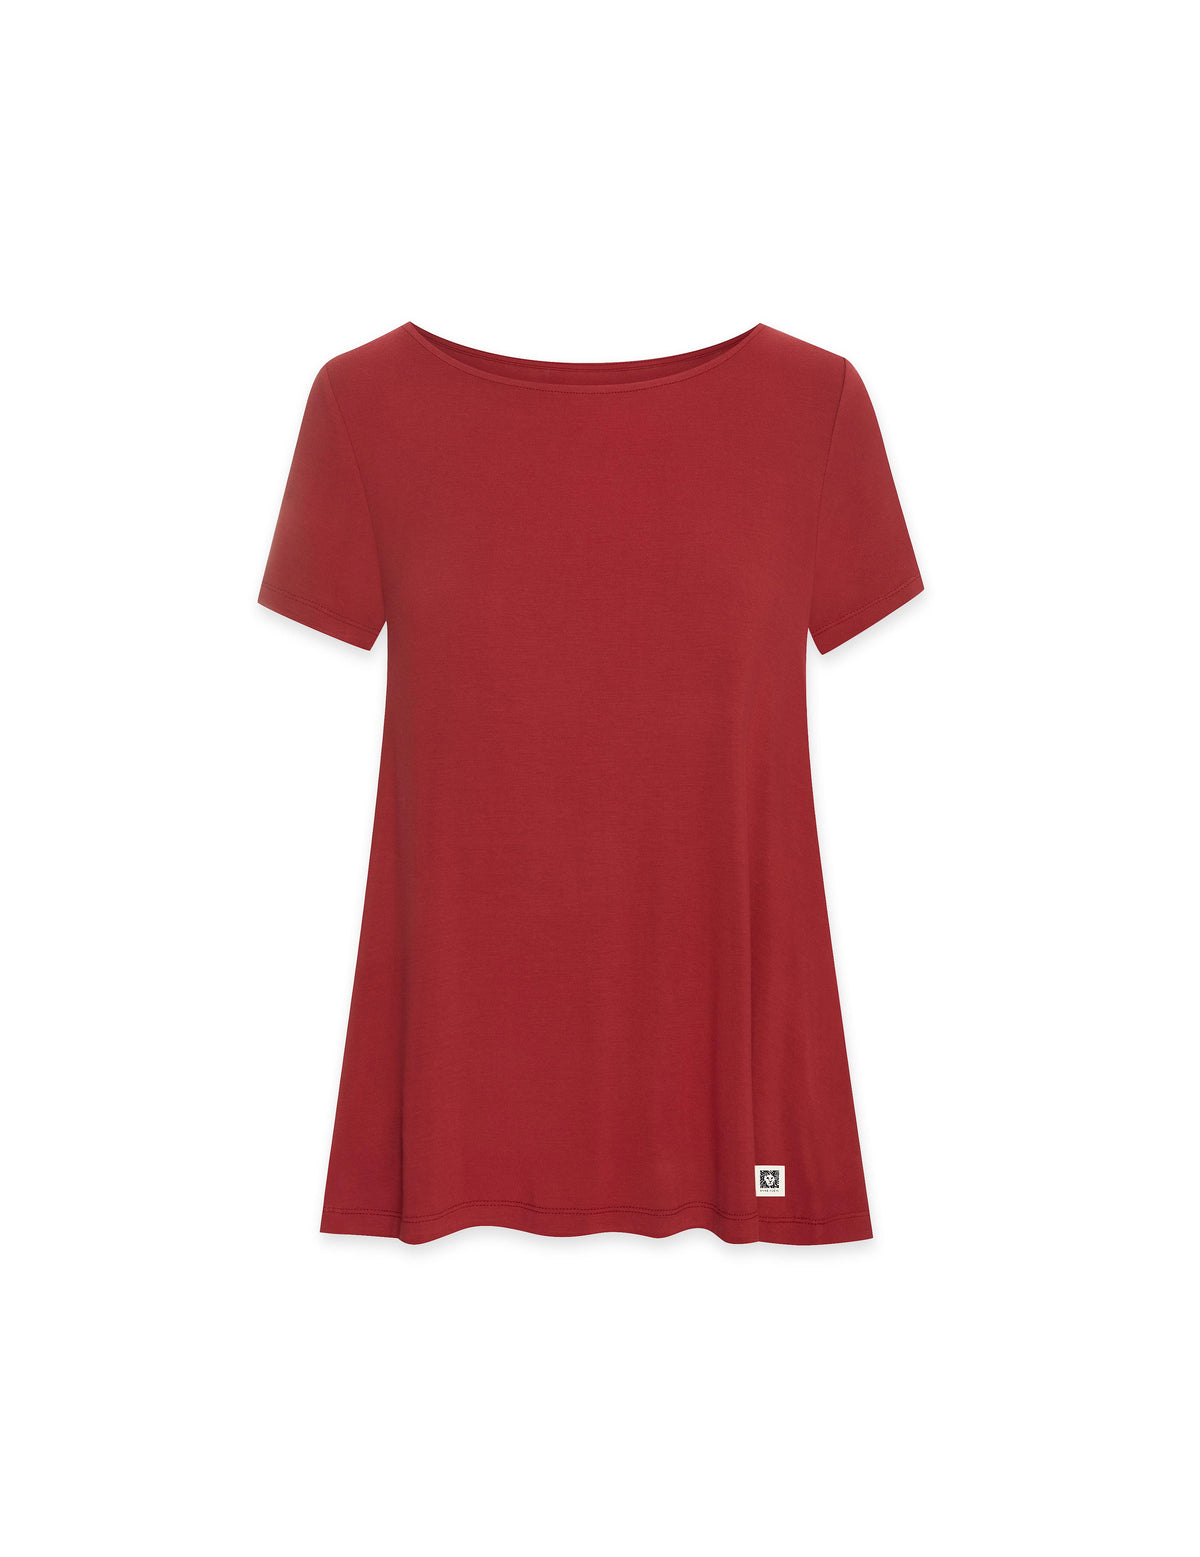 Reiny Solid Trapeze Tee